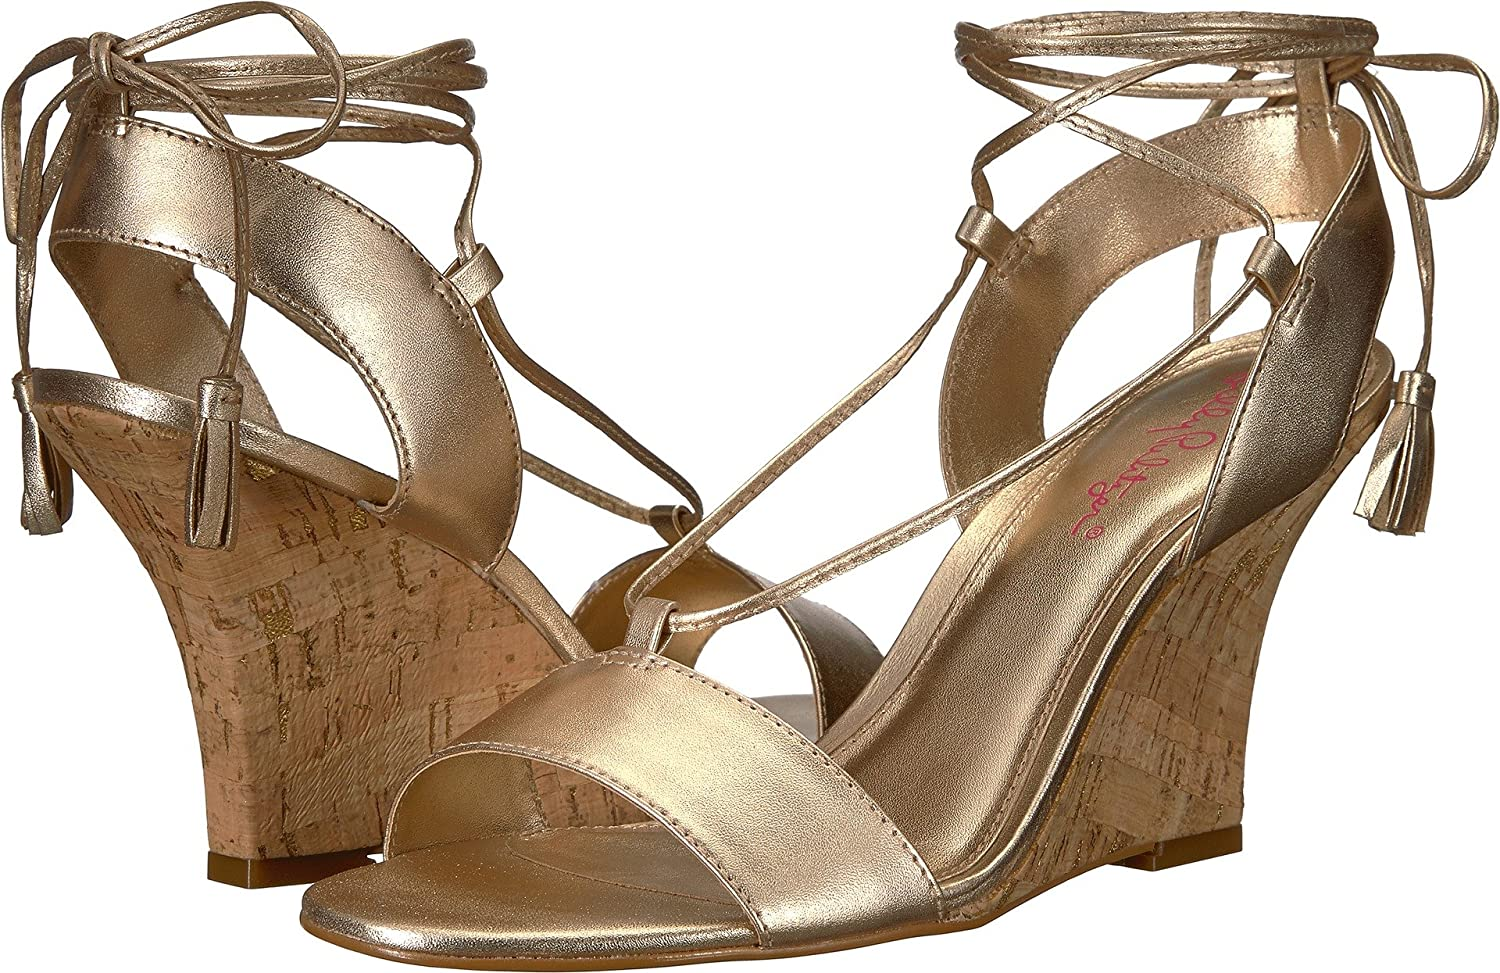 Lilly Pulitzer Womens Aria Wedge B078WGBMJR 6 B(M) US|Gold Metallic